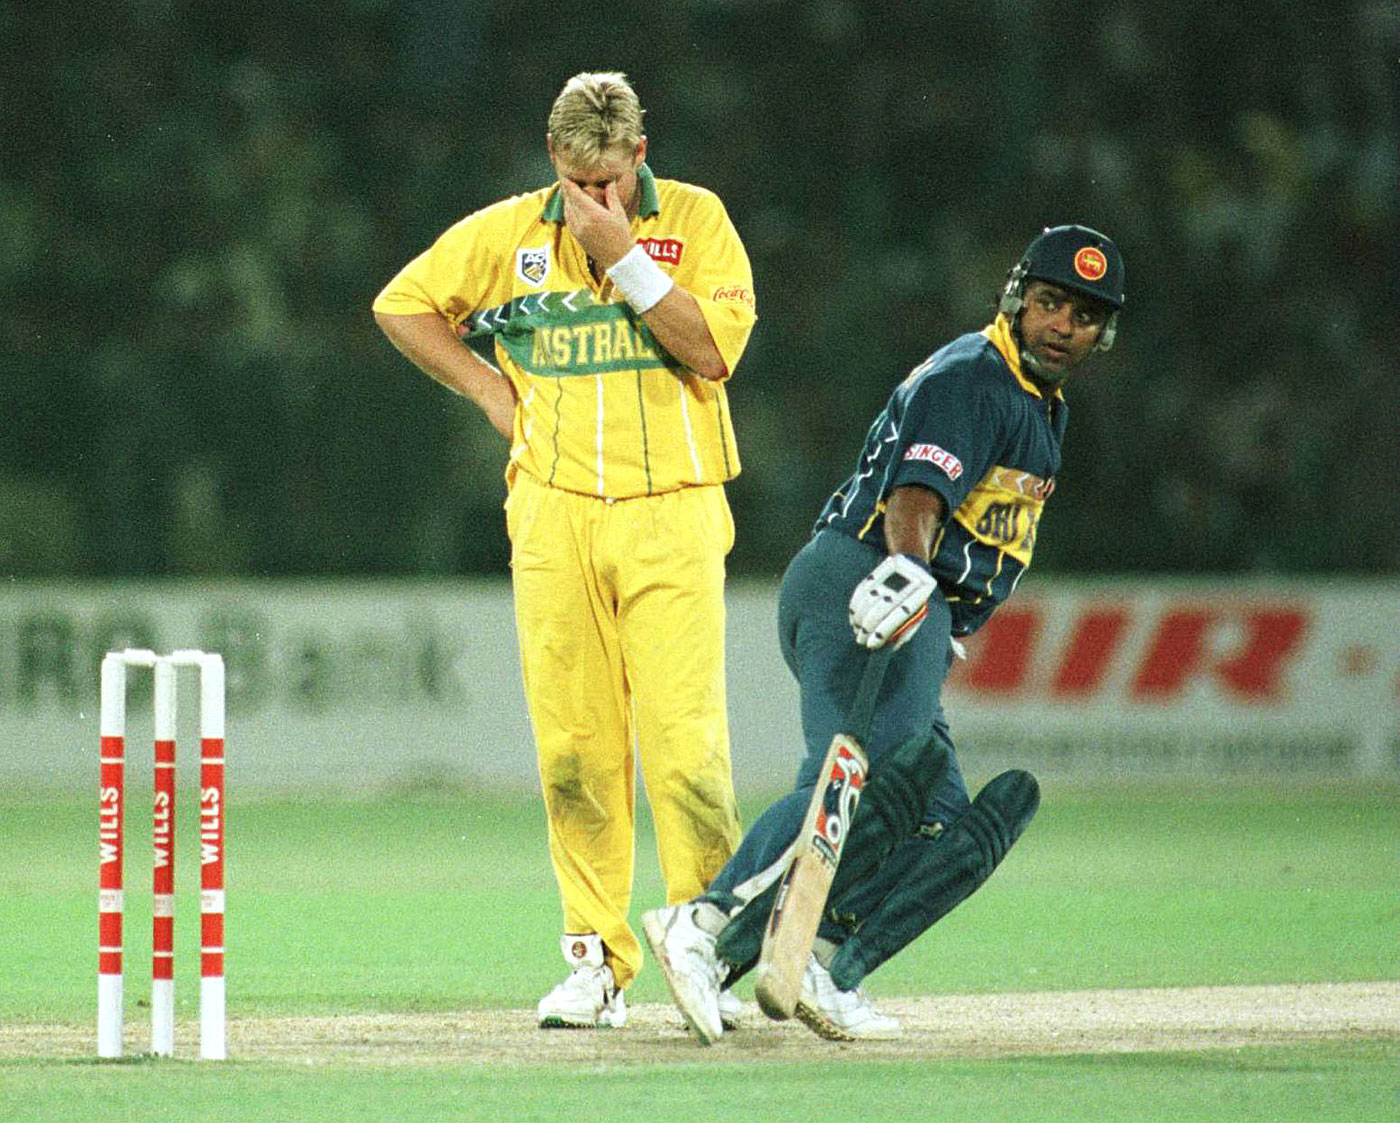 In the 1996 World Cup final, Ranatunga finished with 47 runs off 37 balls, Warne with 10-0-58-0